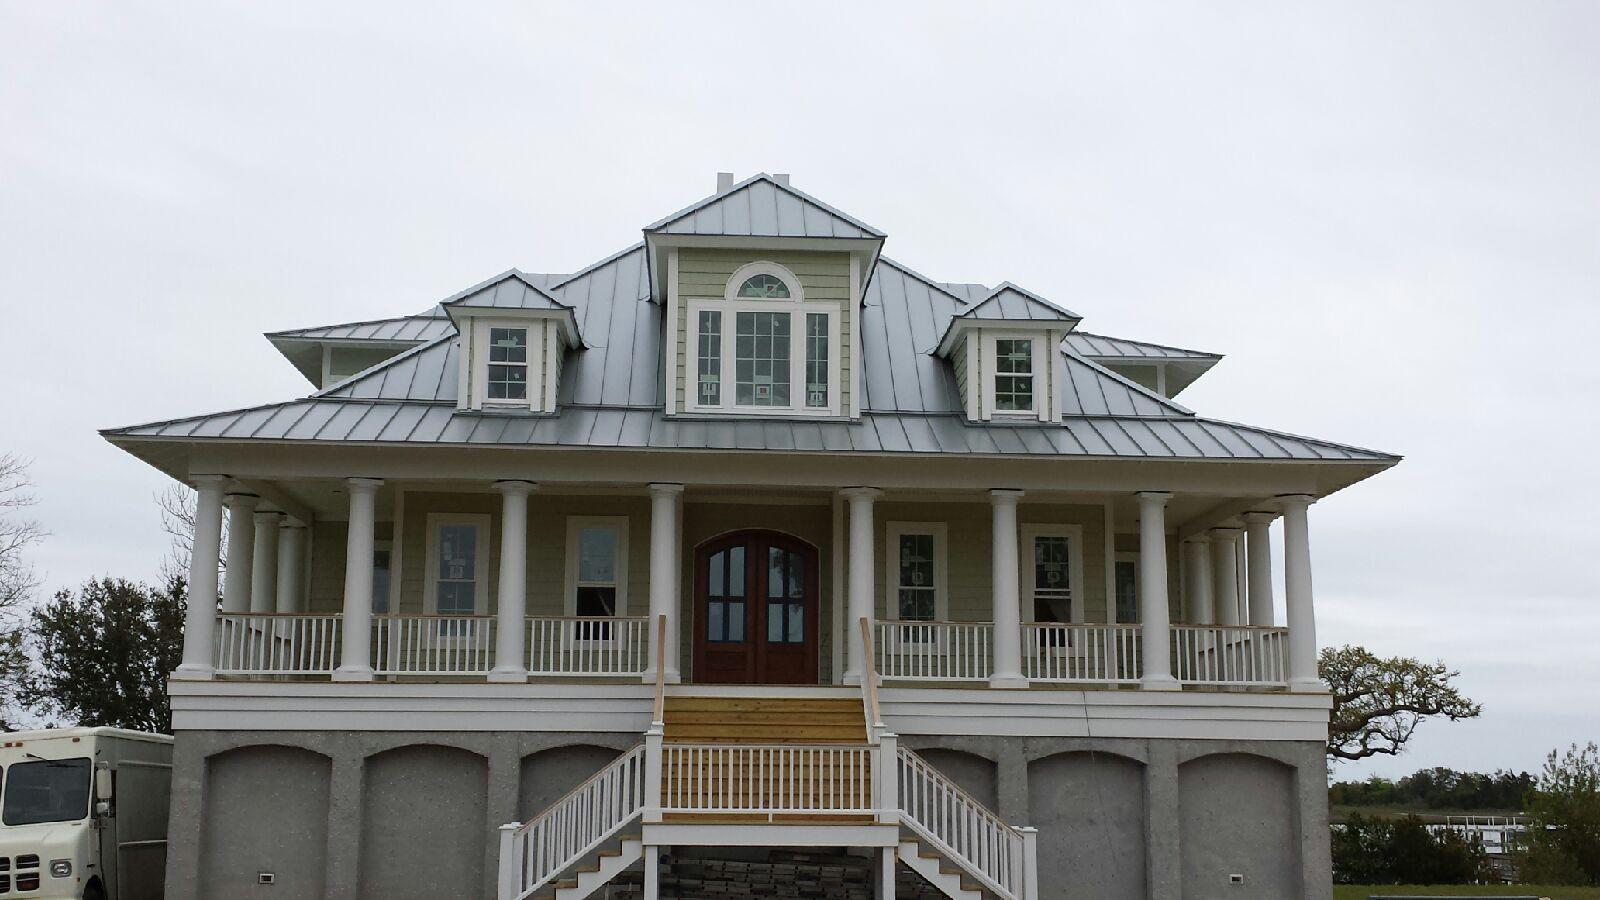 Which are the providers of roofing Wilmington nc